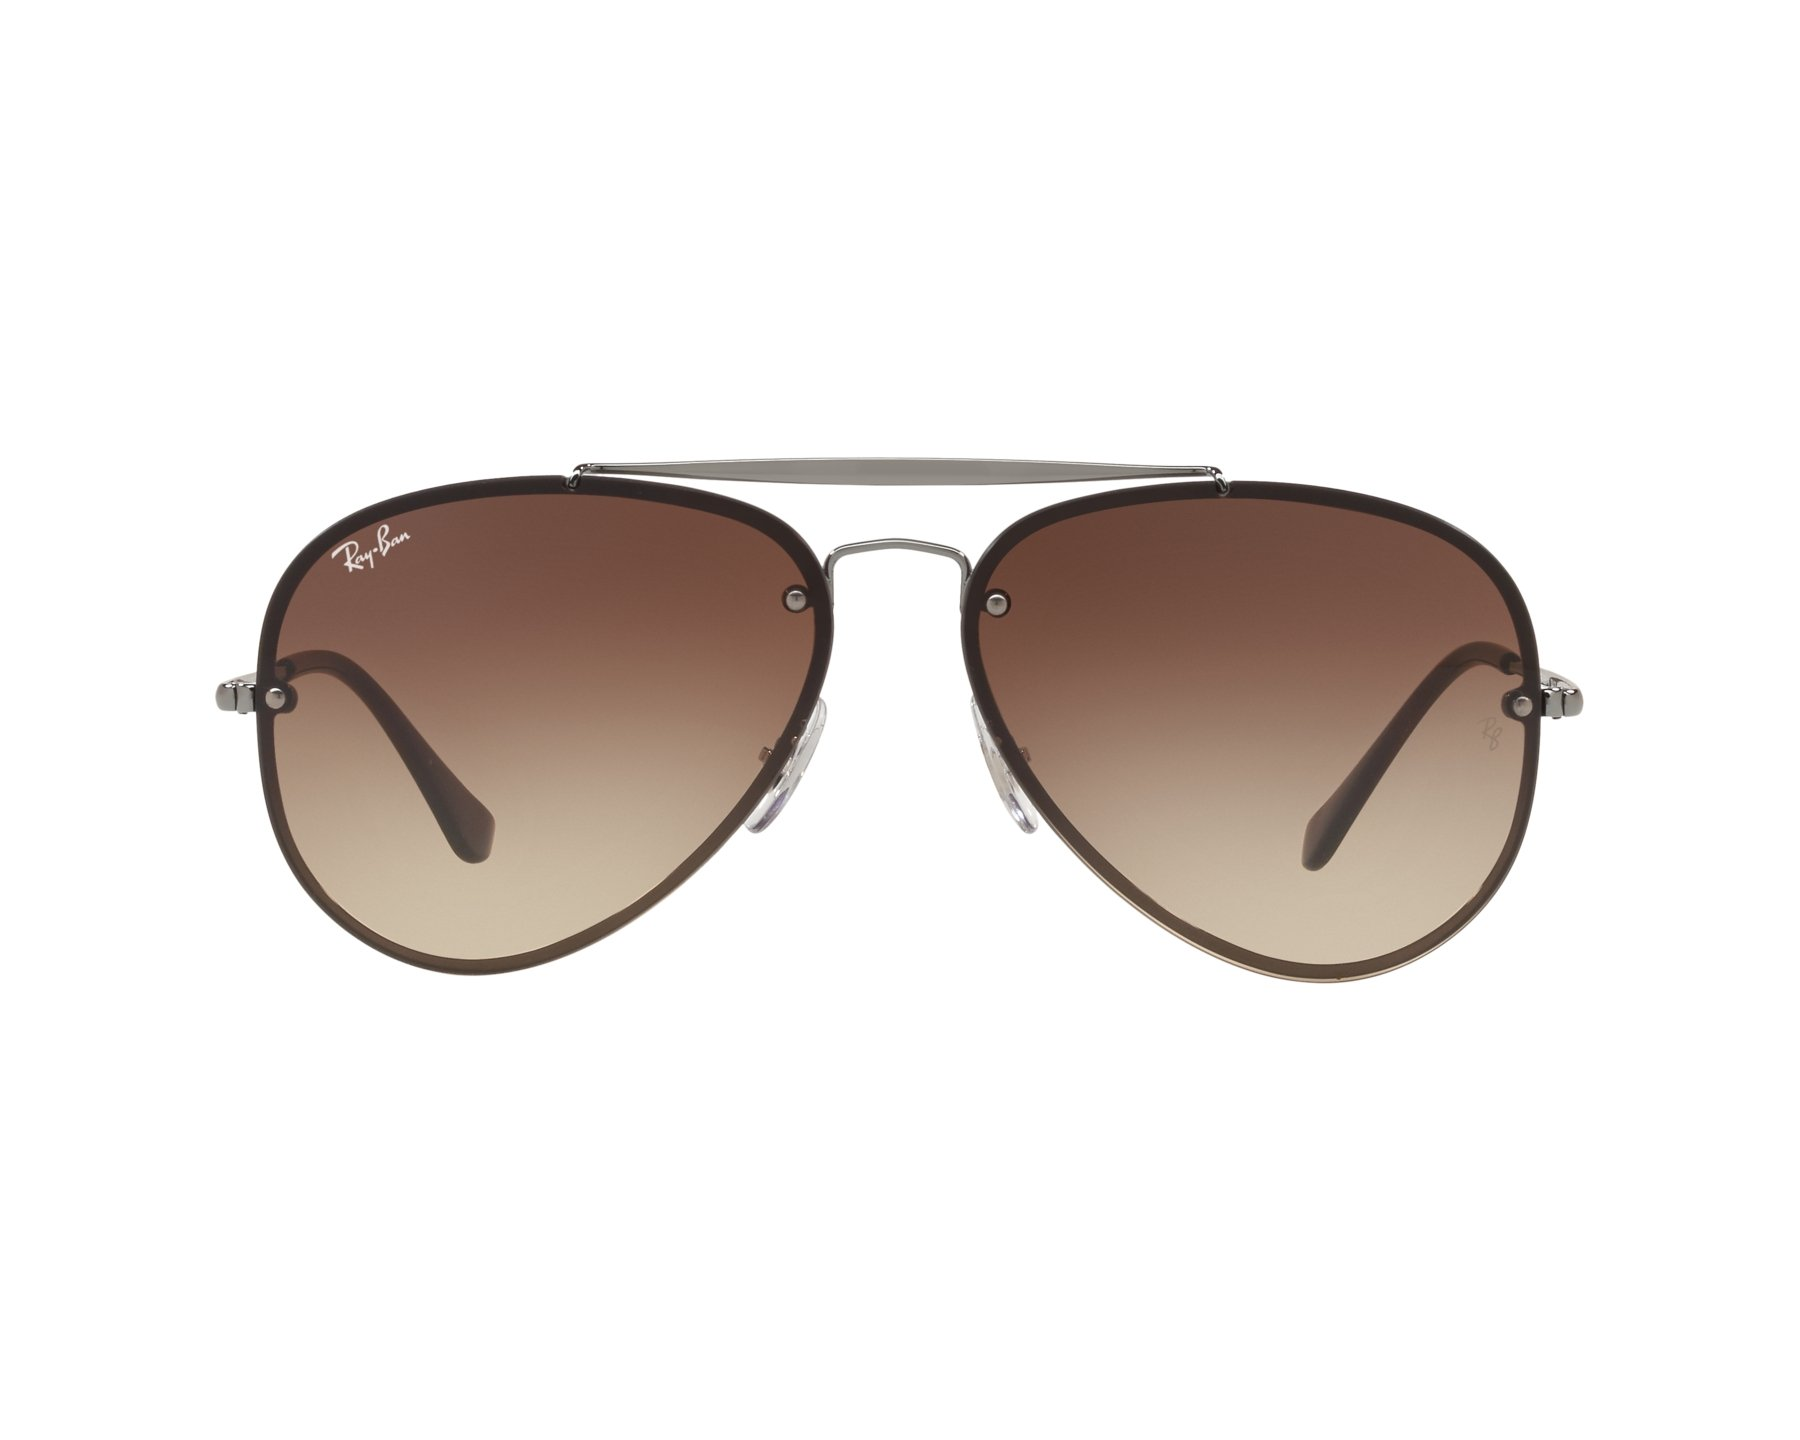 3ed6d7a992 Ray-Ban Sunglasses Blaze Aviator RB-3584-N 004 13